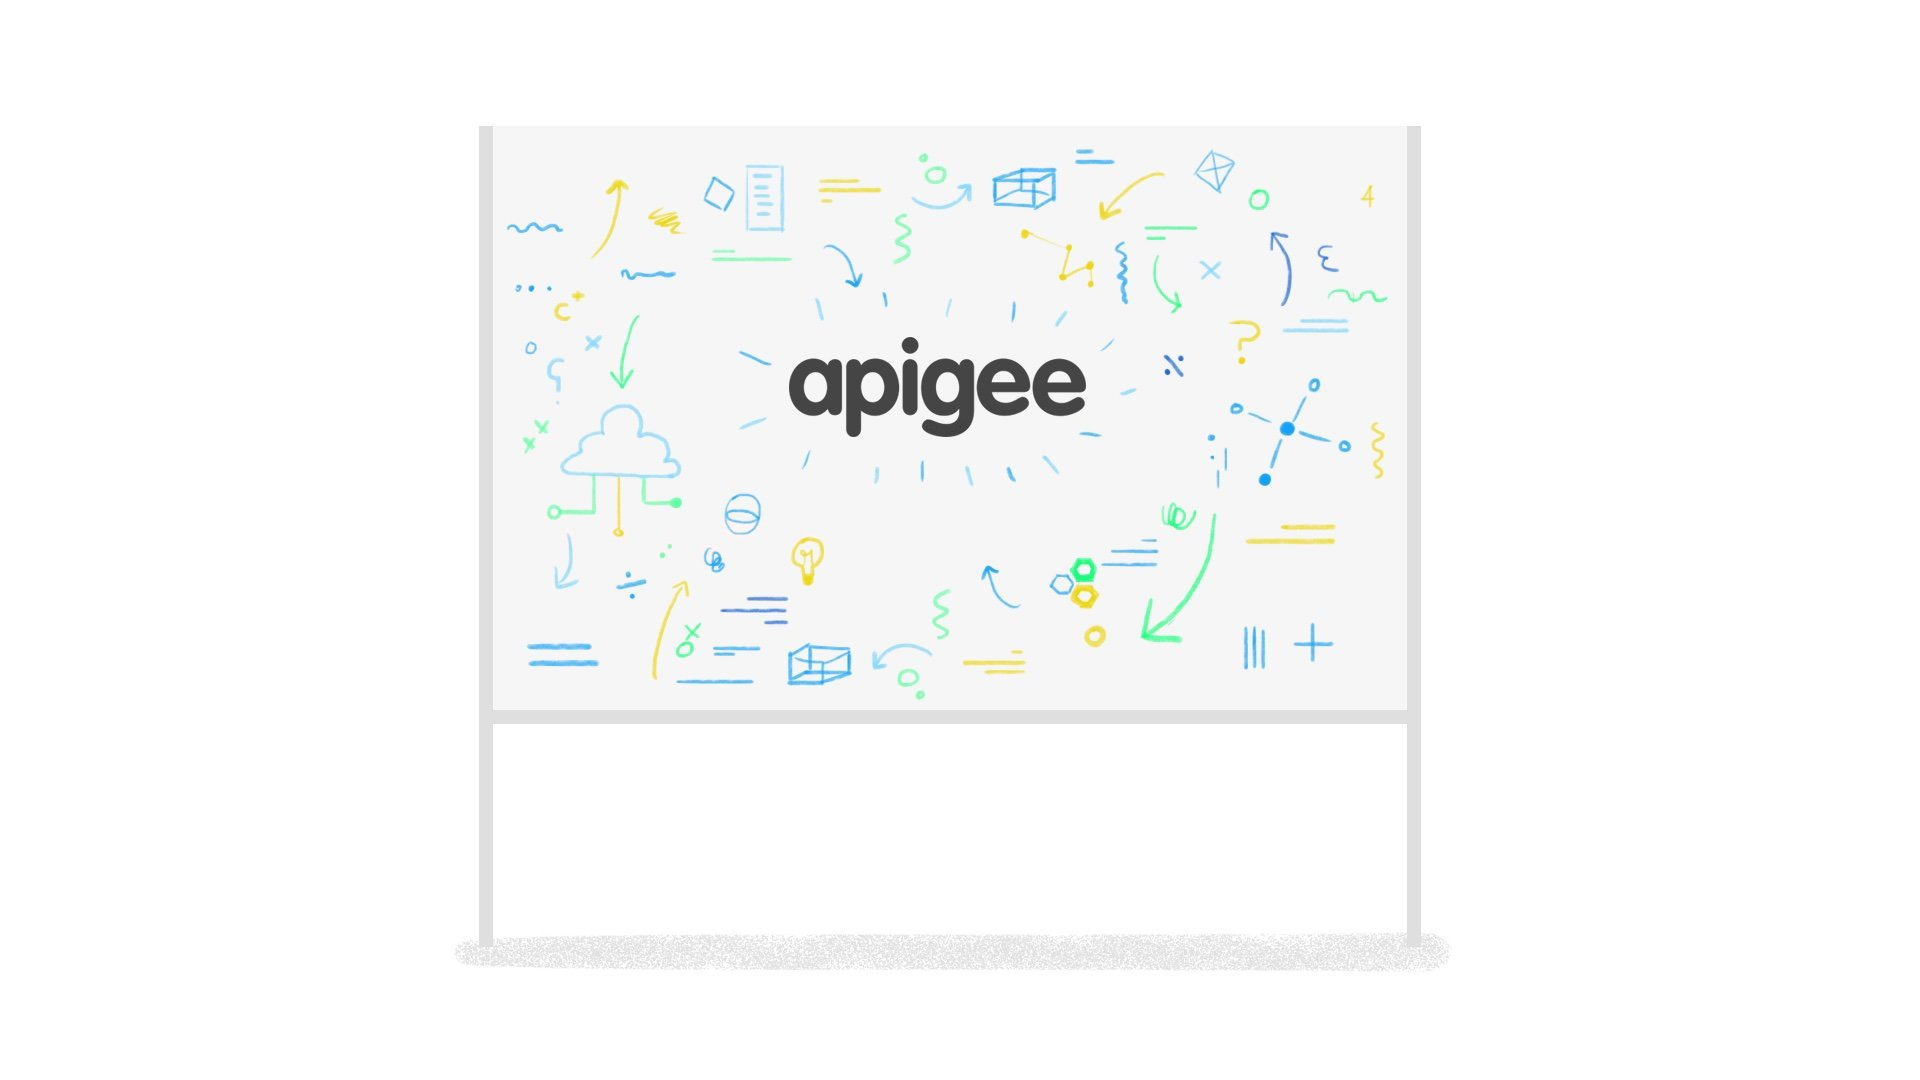 illustration for an animation showing the apigee logo